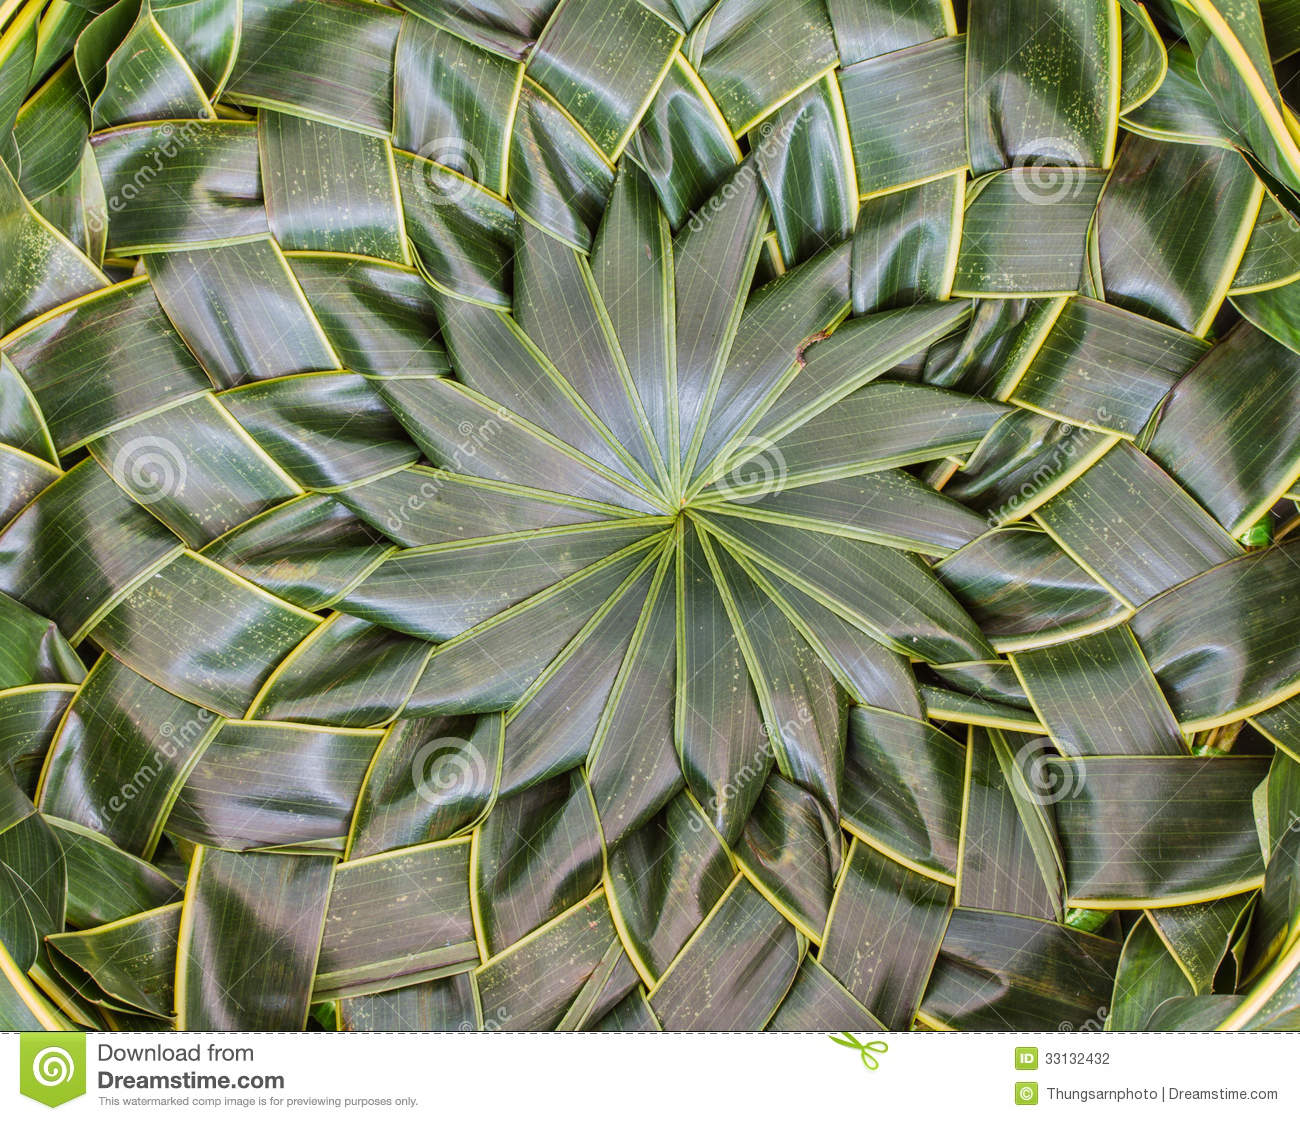 Basket Weaving With Leaves : Coconut leaves woven stock photography image